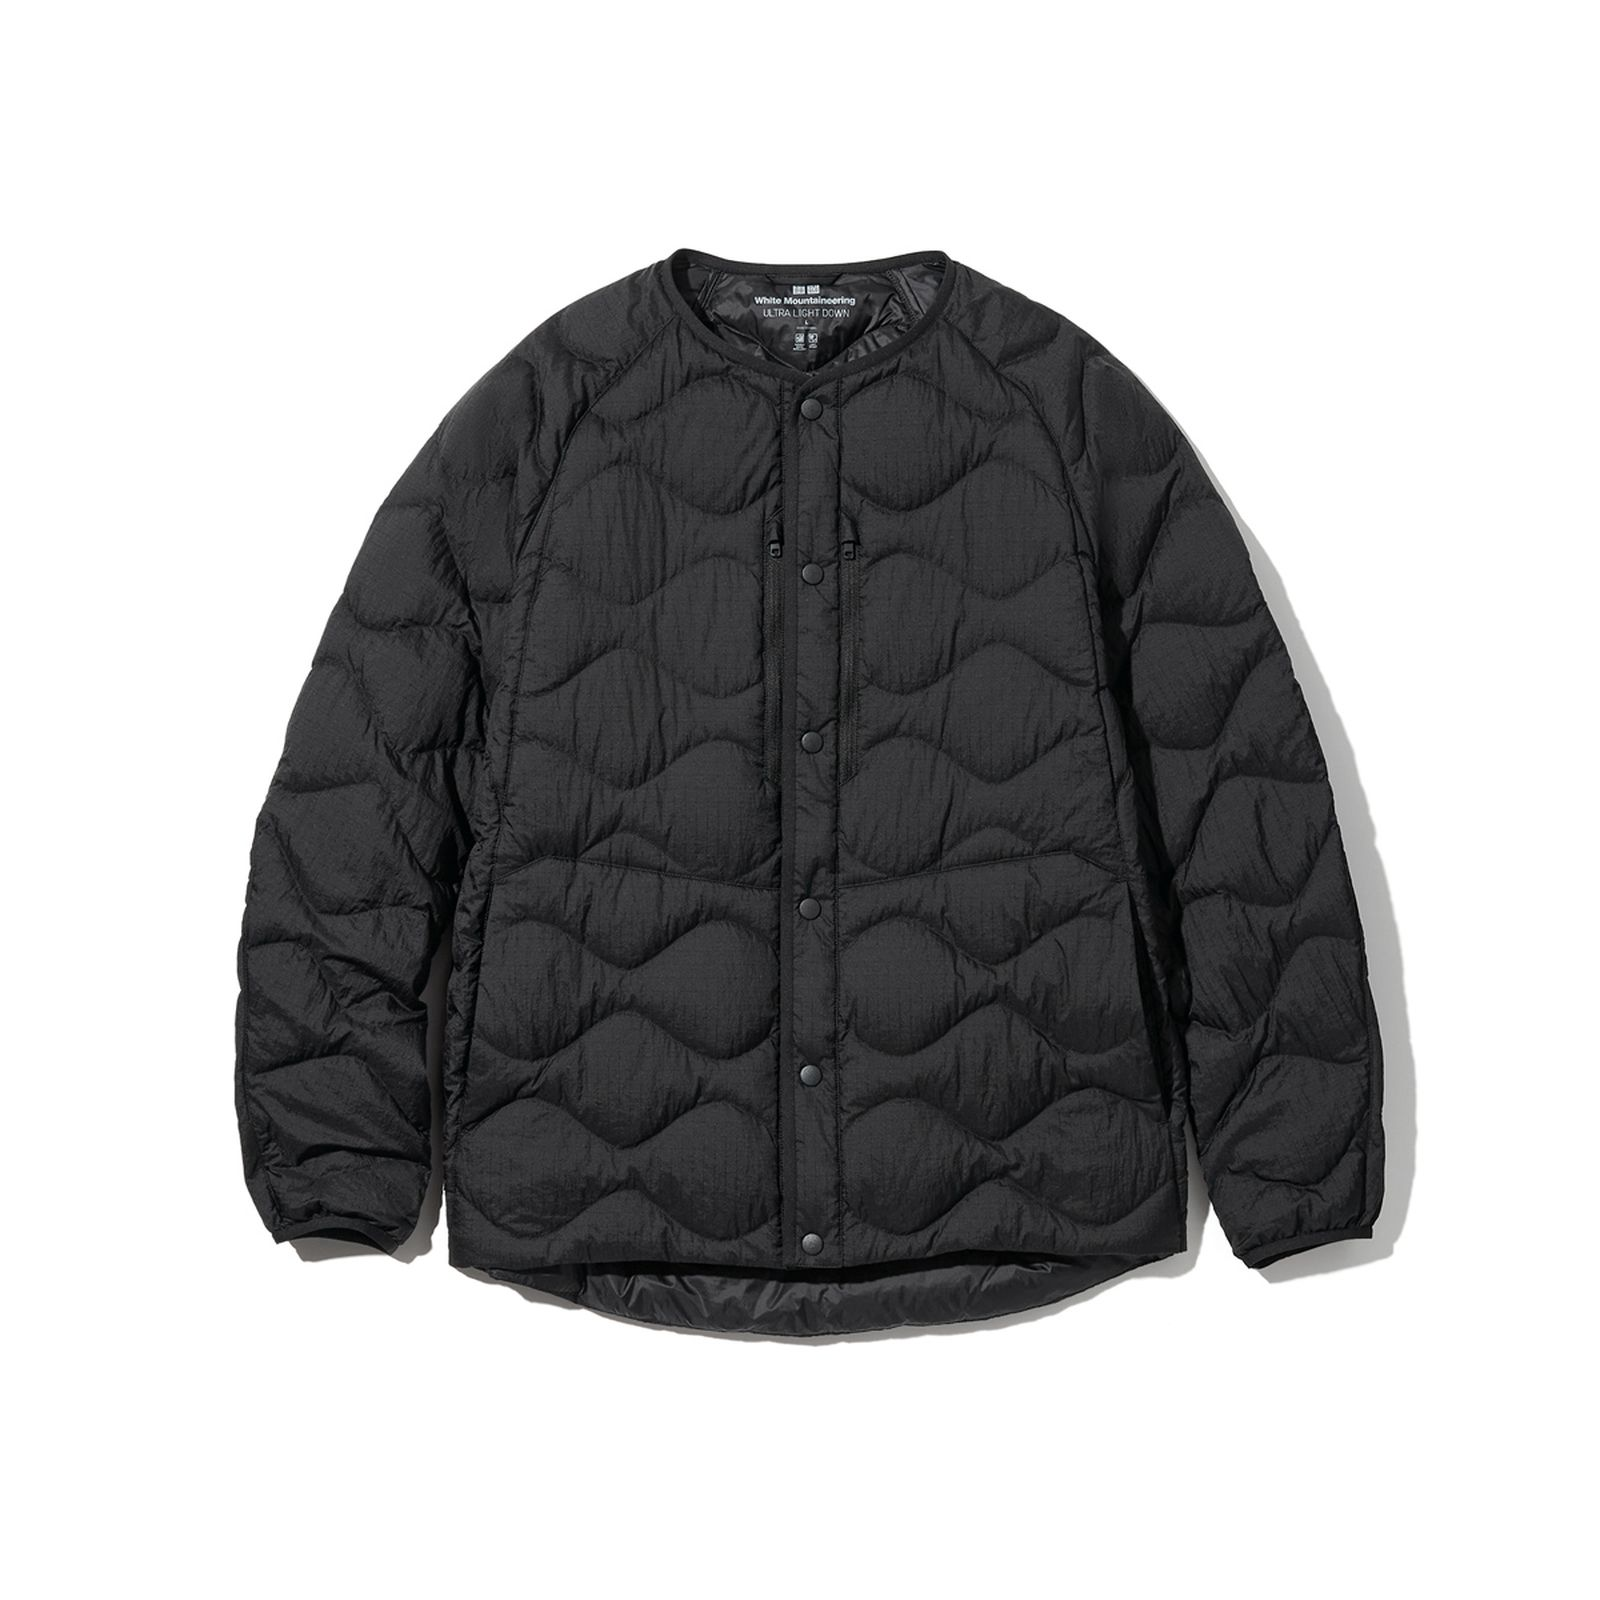 white-mountaineering-uniqlo-fw21-collection-release-info-1